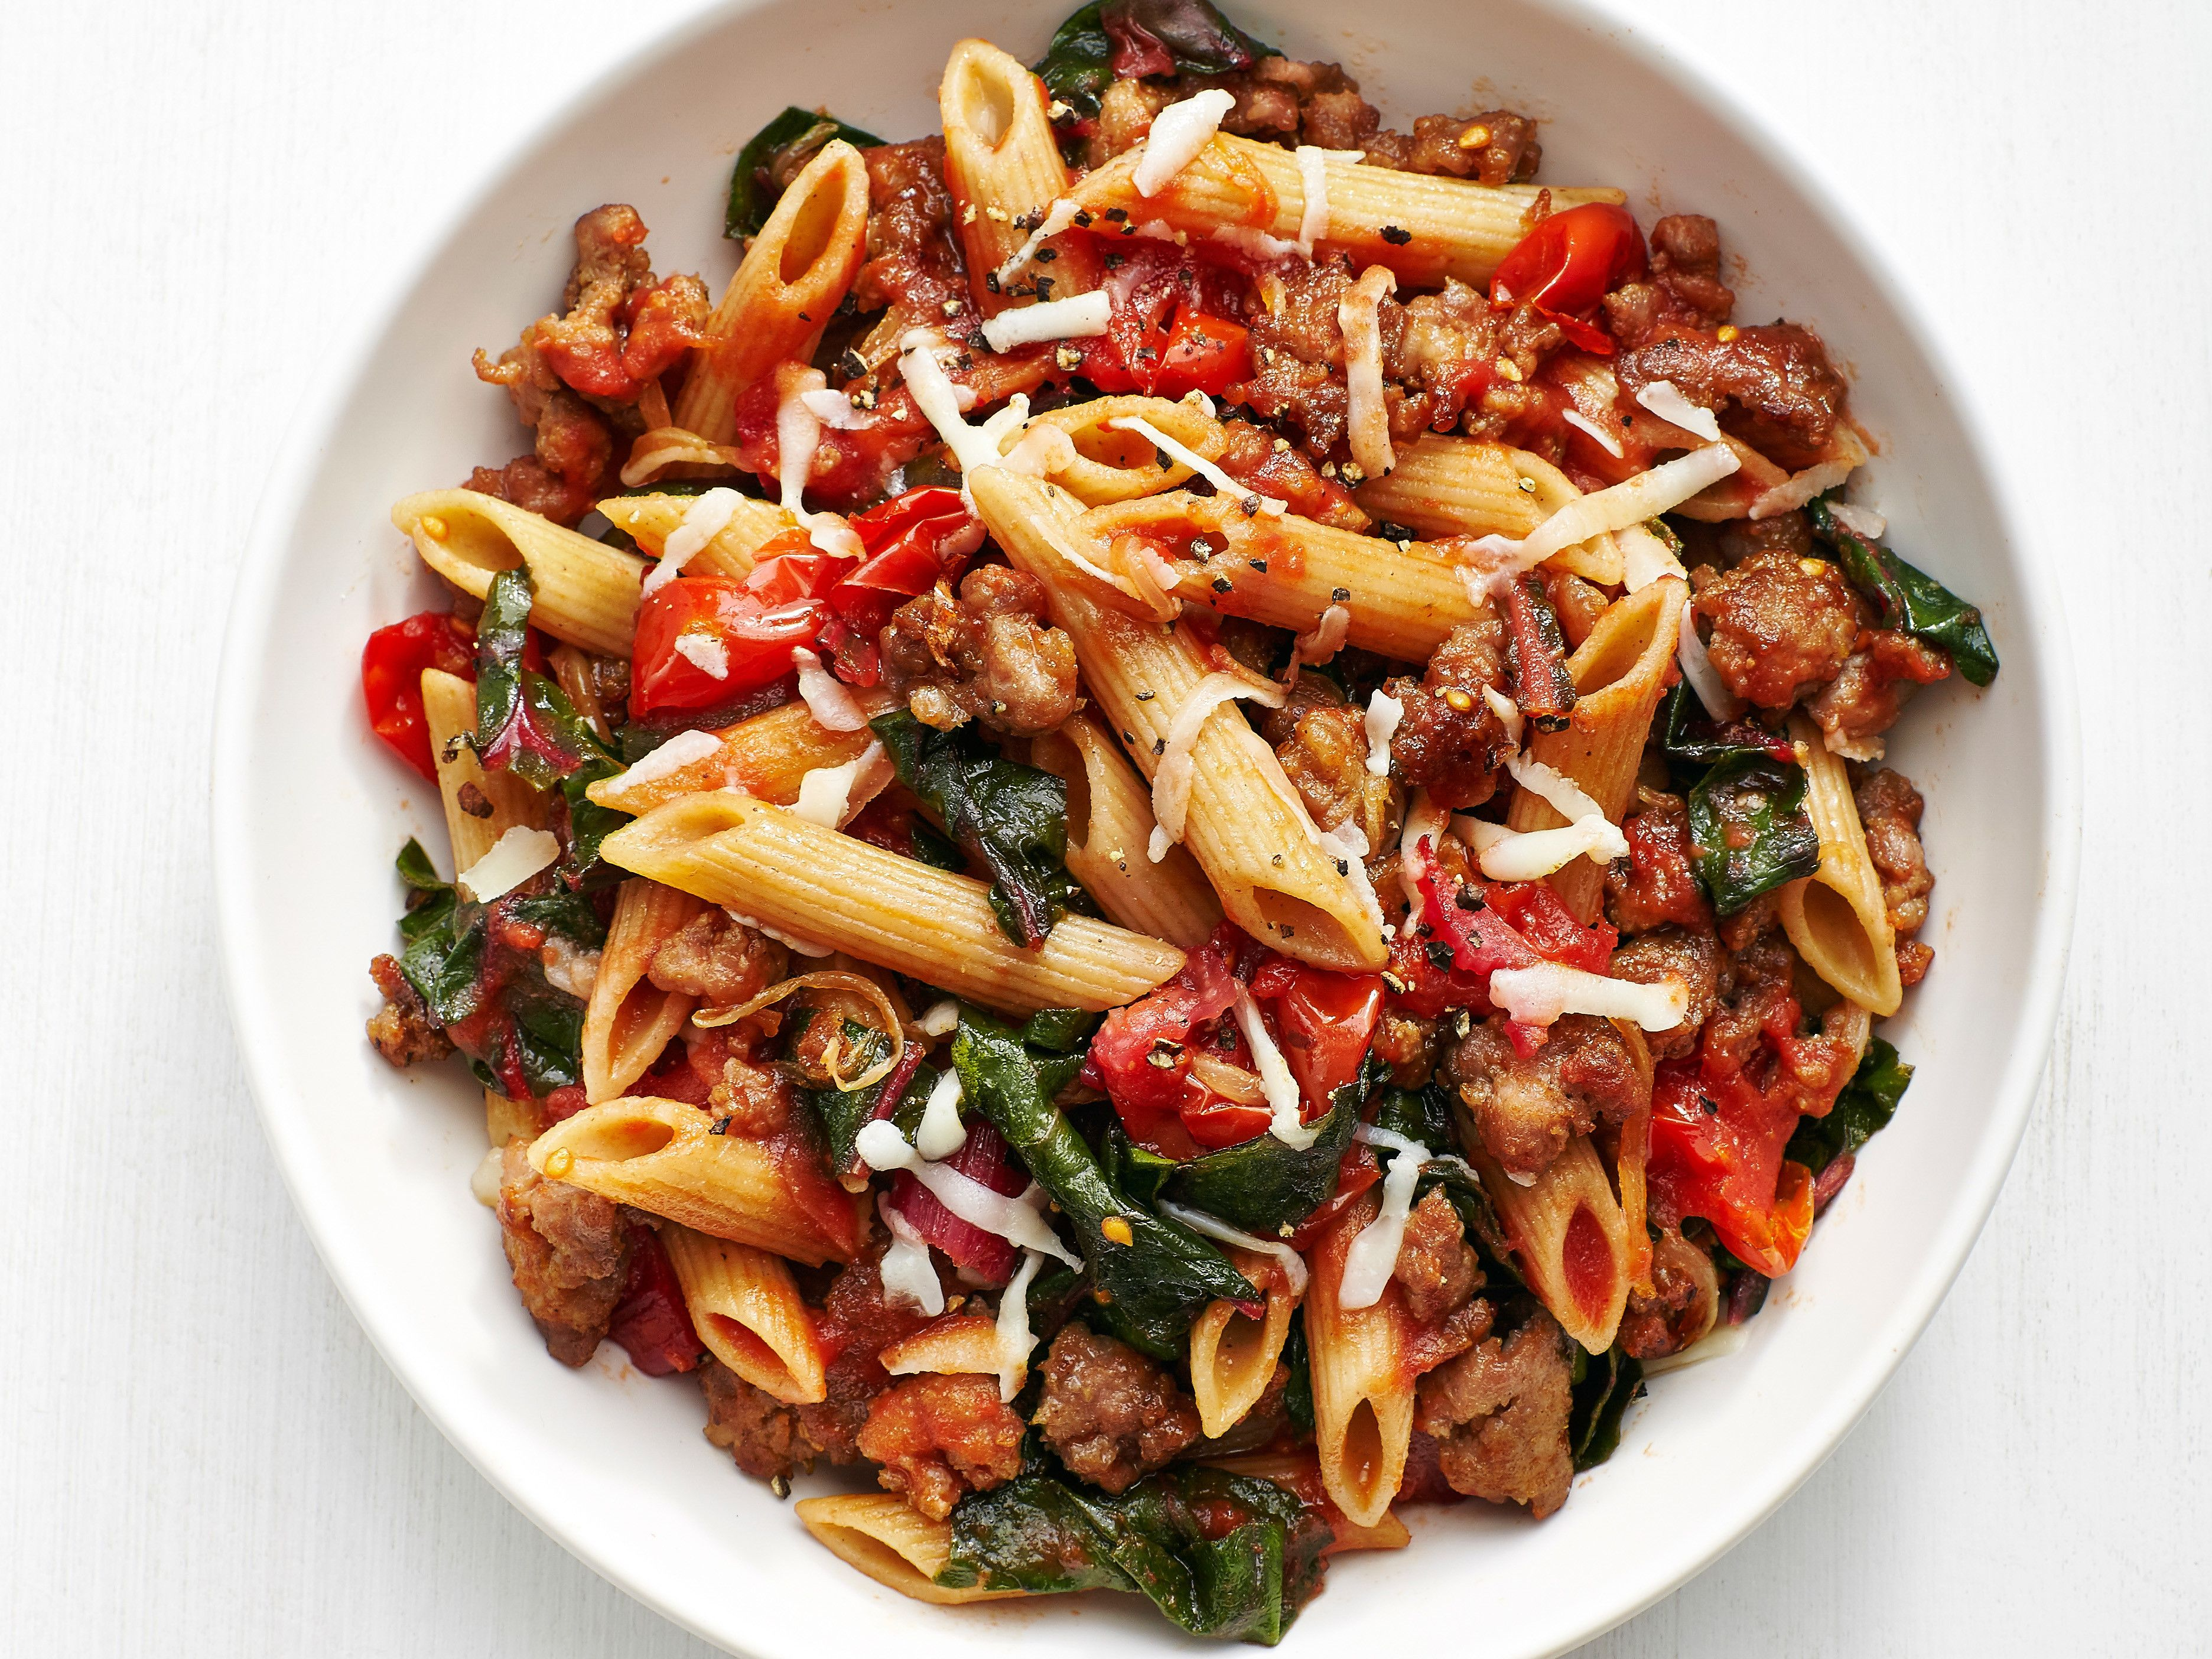 Whole Wheat Pasta With Sausage And Swiss Chard Recipe Food Network Recipes Pasta Chard Recipes